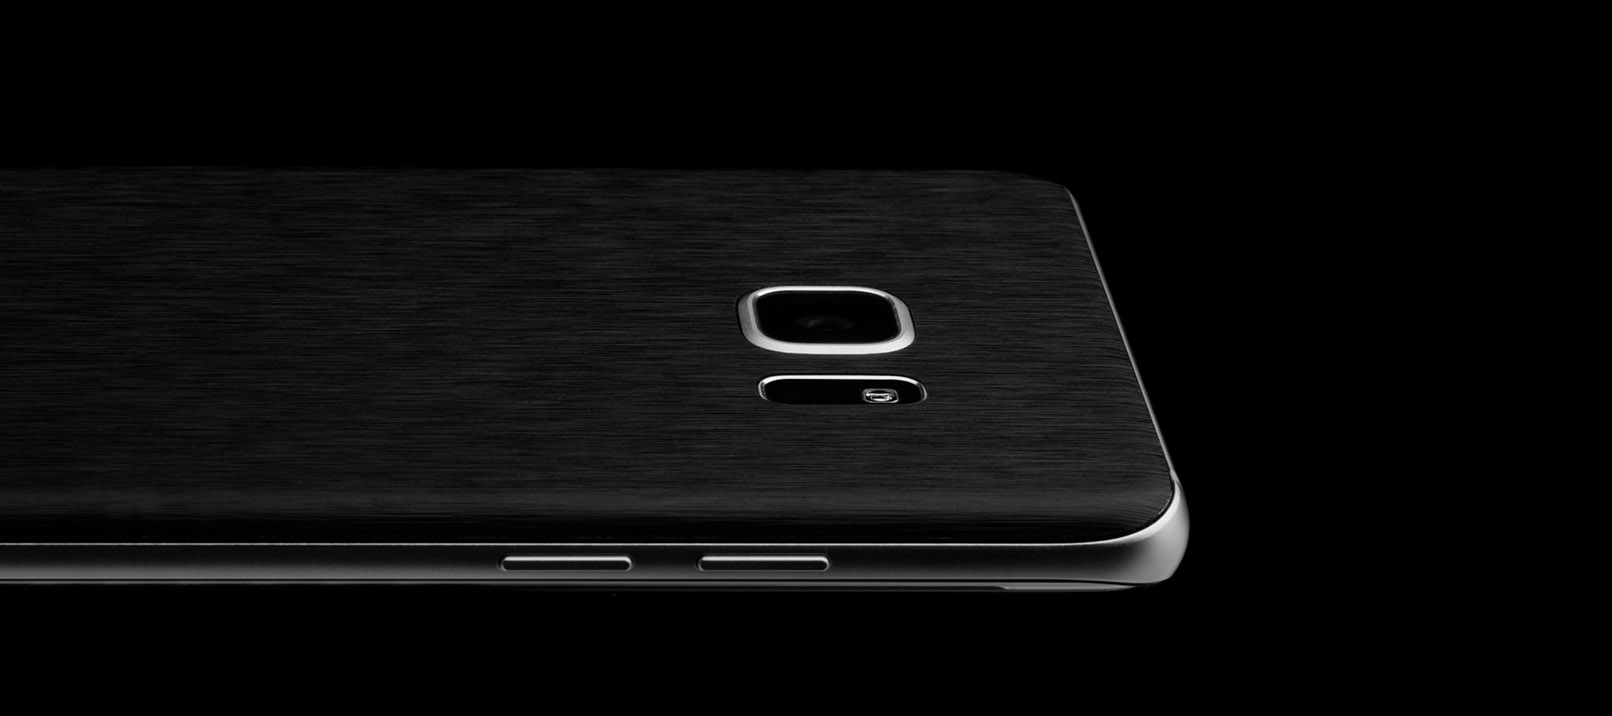 Alleged Galaxy Note 8 Design Revealed via Schematic Drawing 1